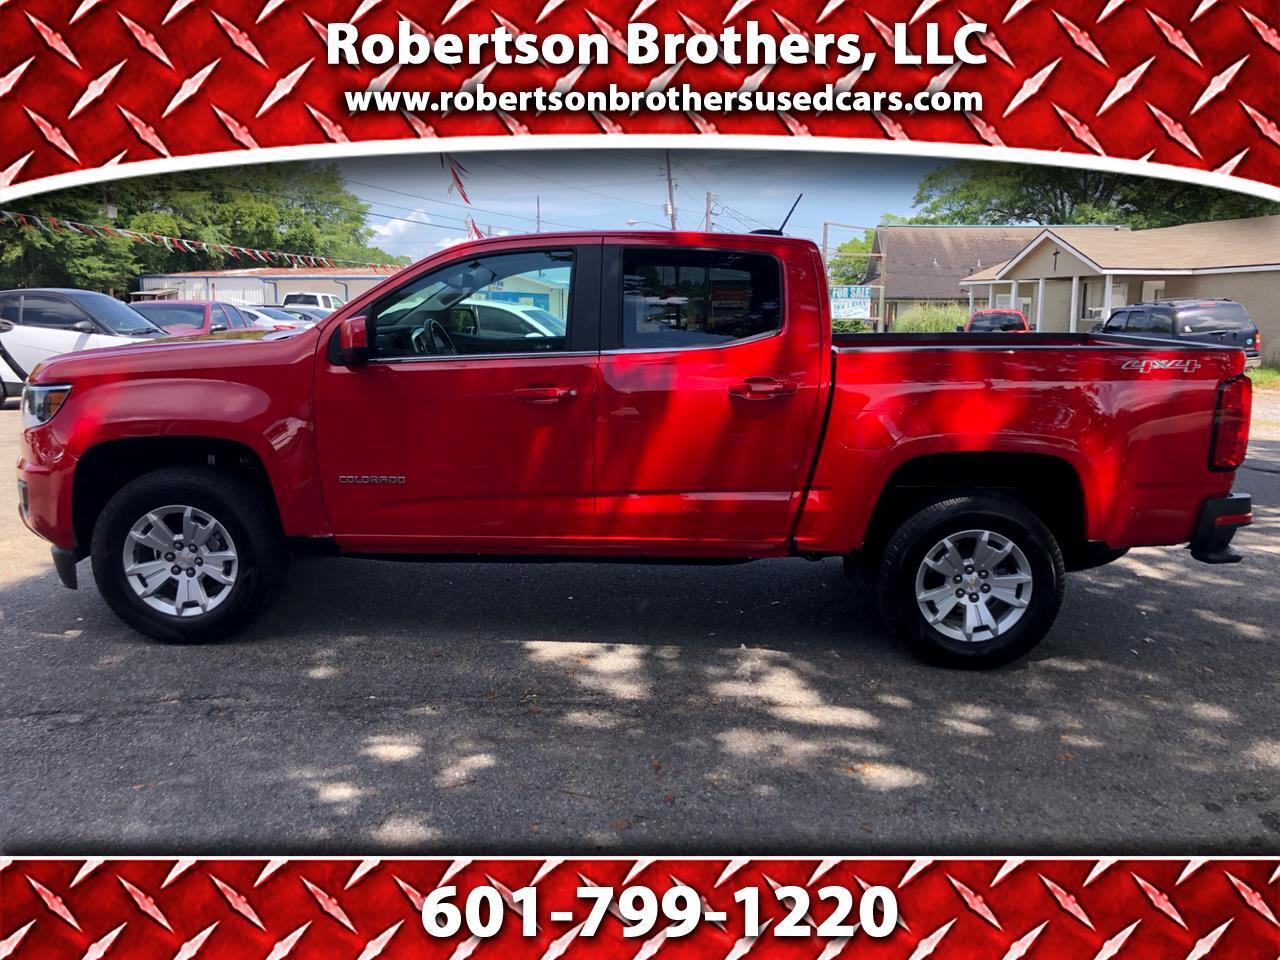 Used 2019 Chevrolet Colorado for Sale in Picayune, MS 39466